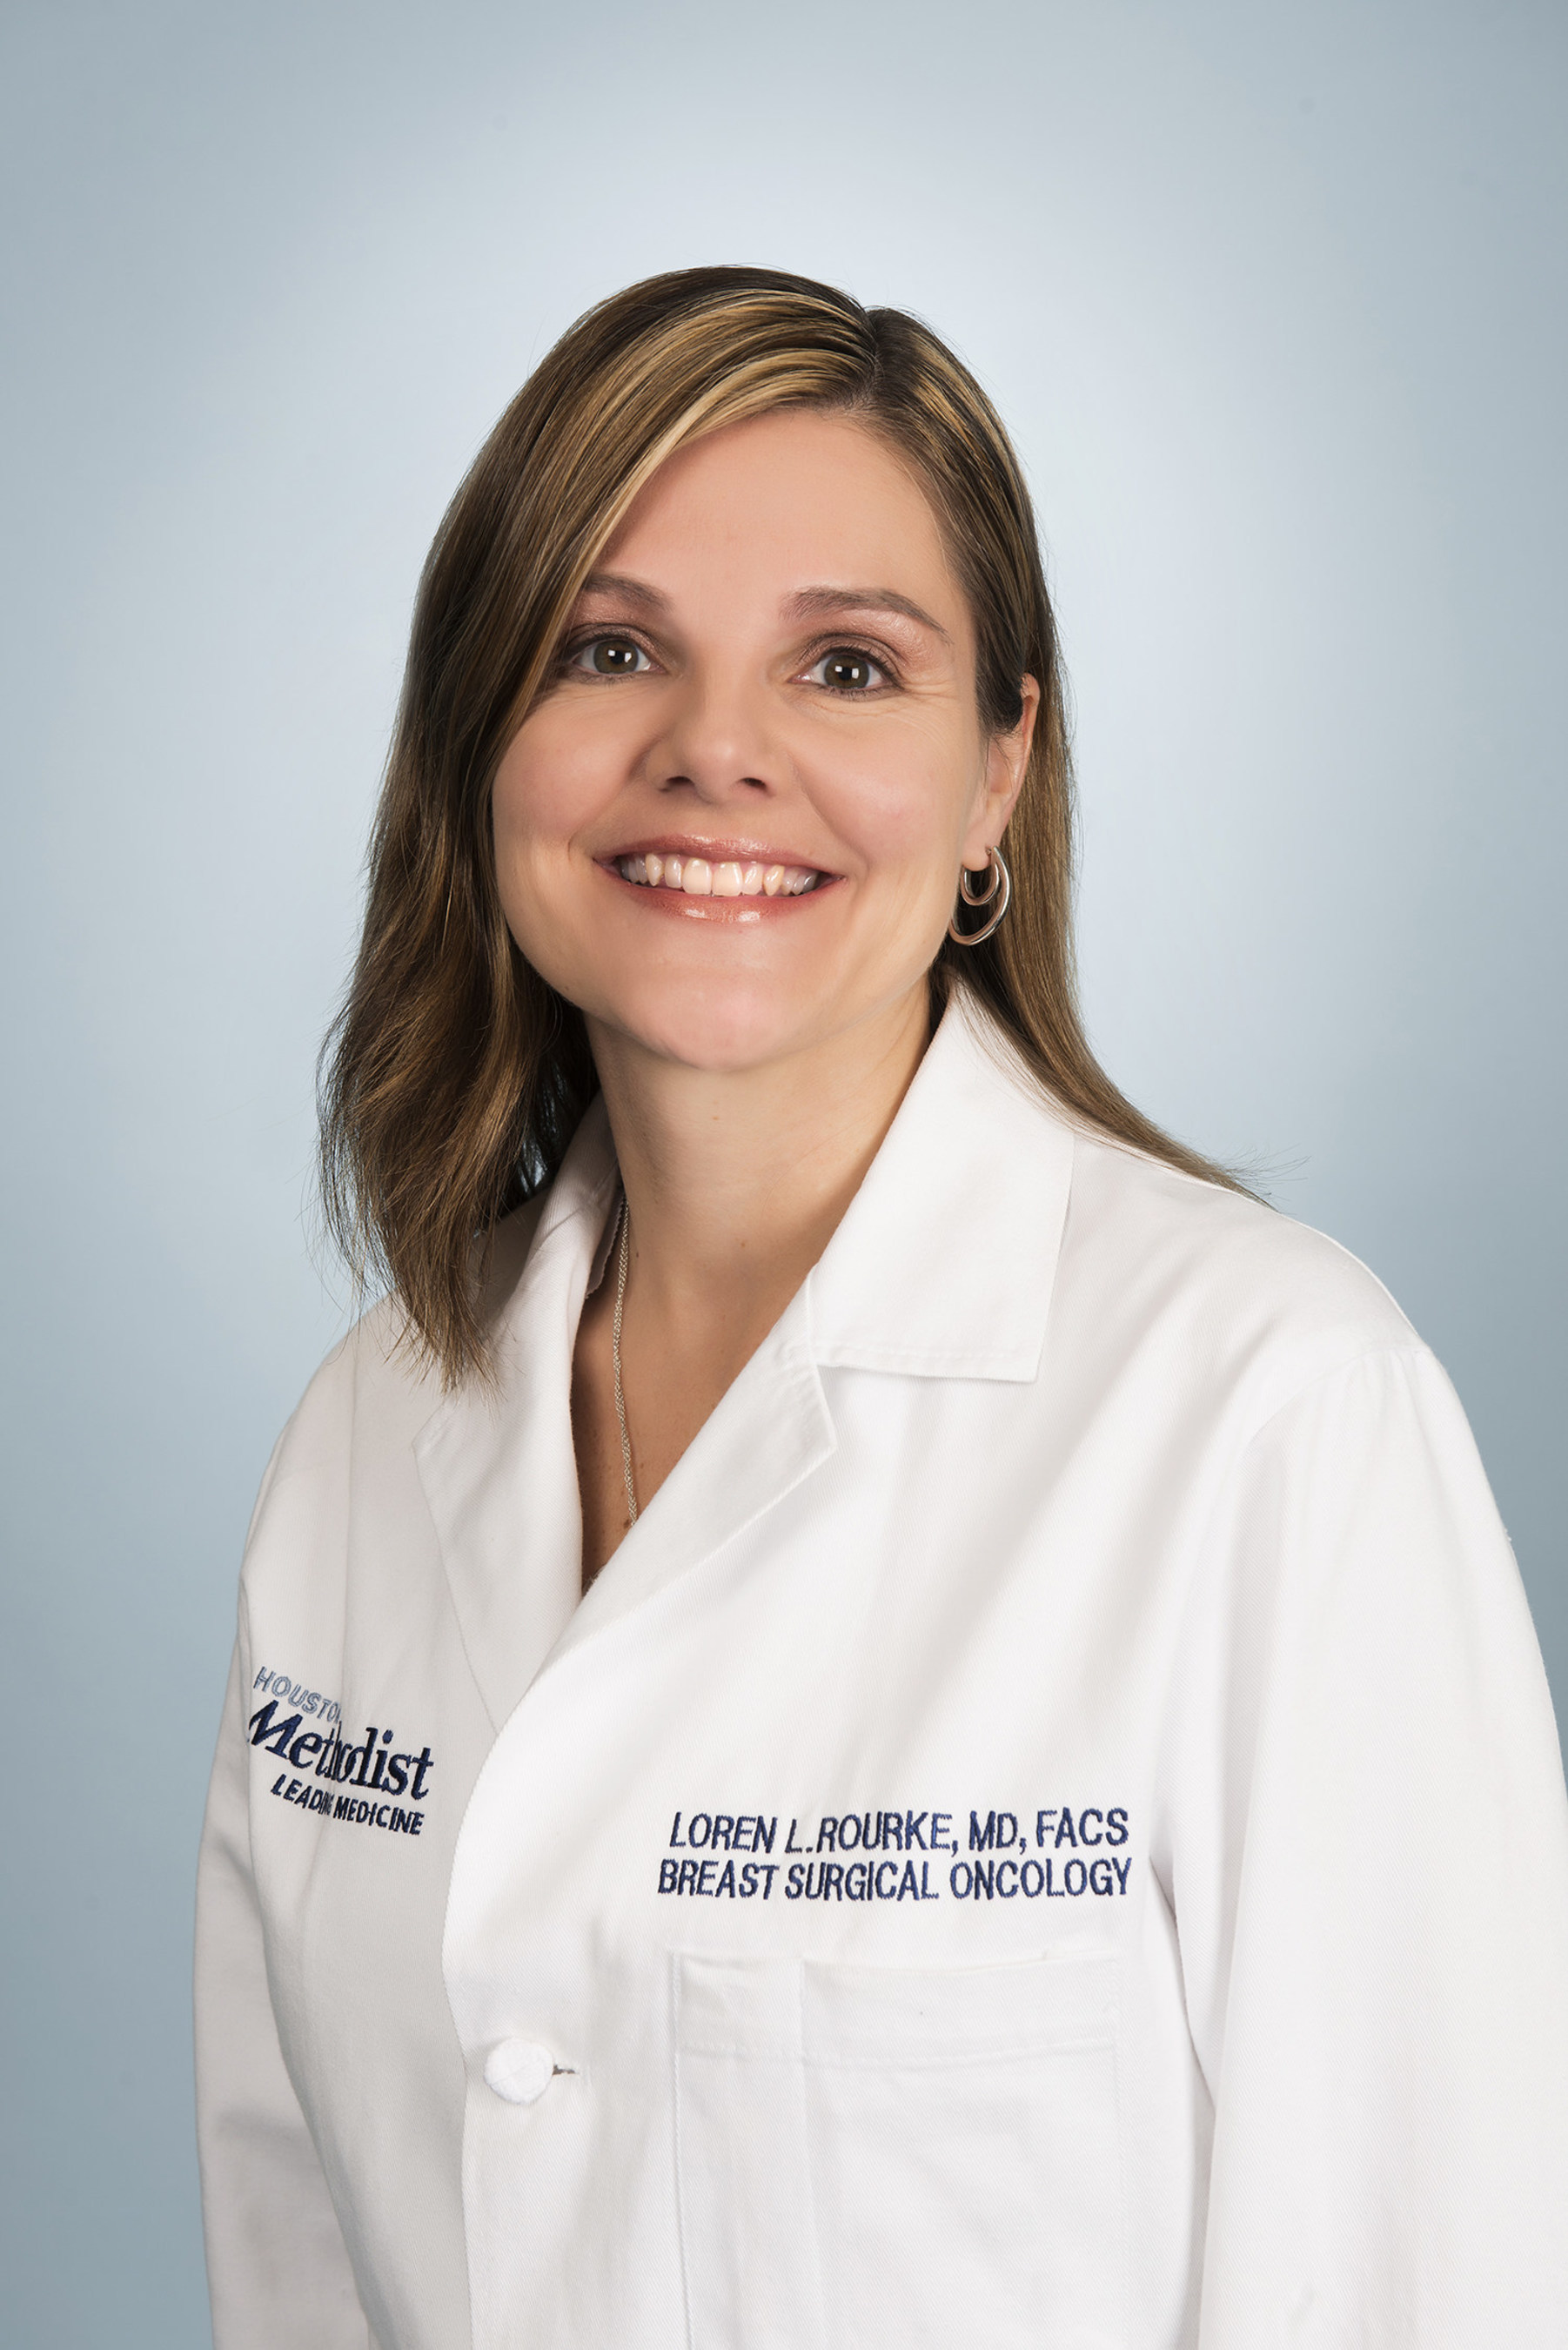 Loren Rourke, MD, FACS, breast surgical oncologist and director of Houston Methodist Regional Breast Program